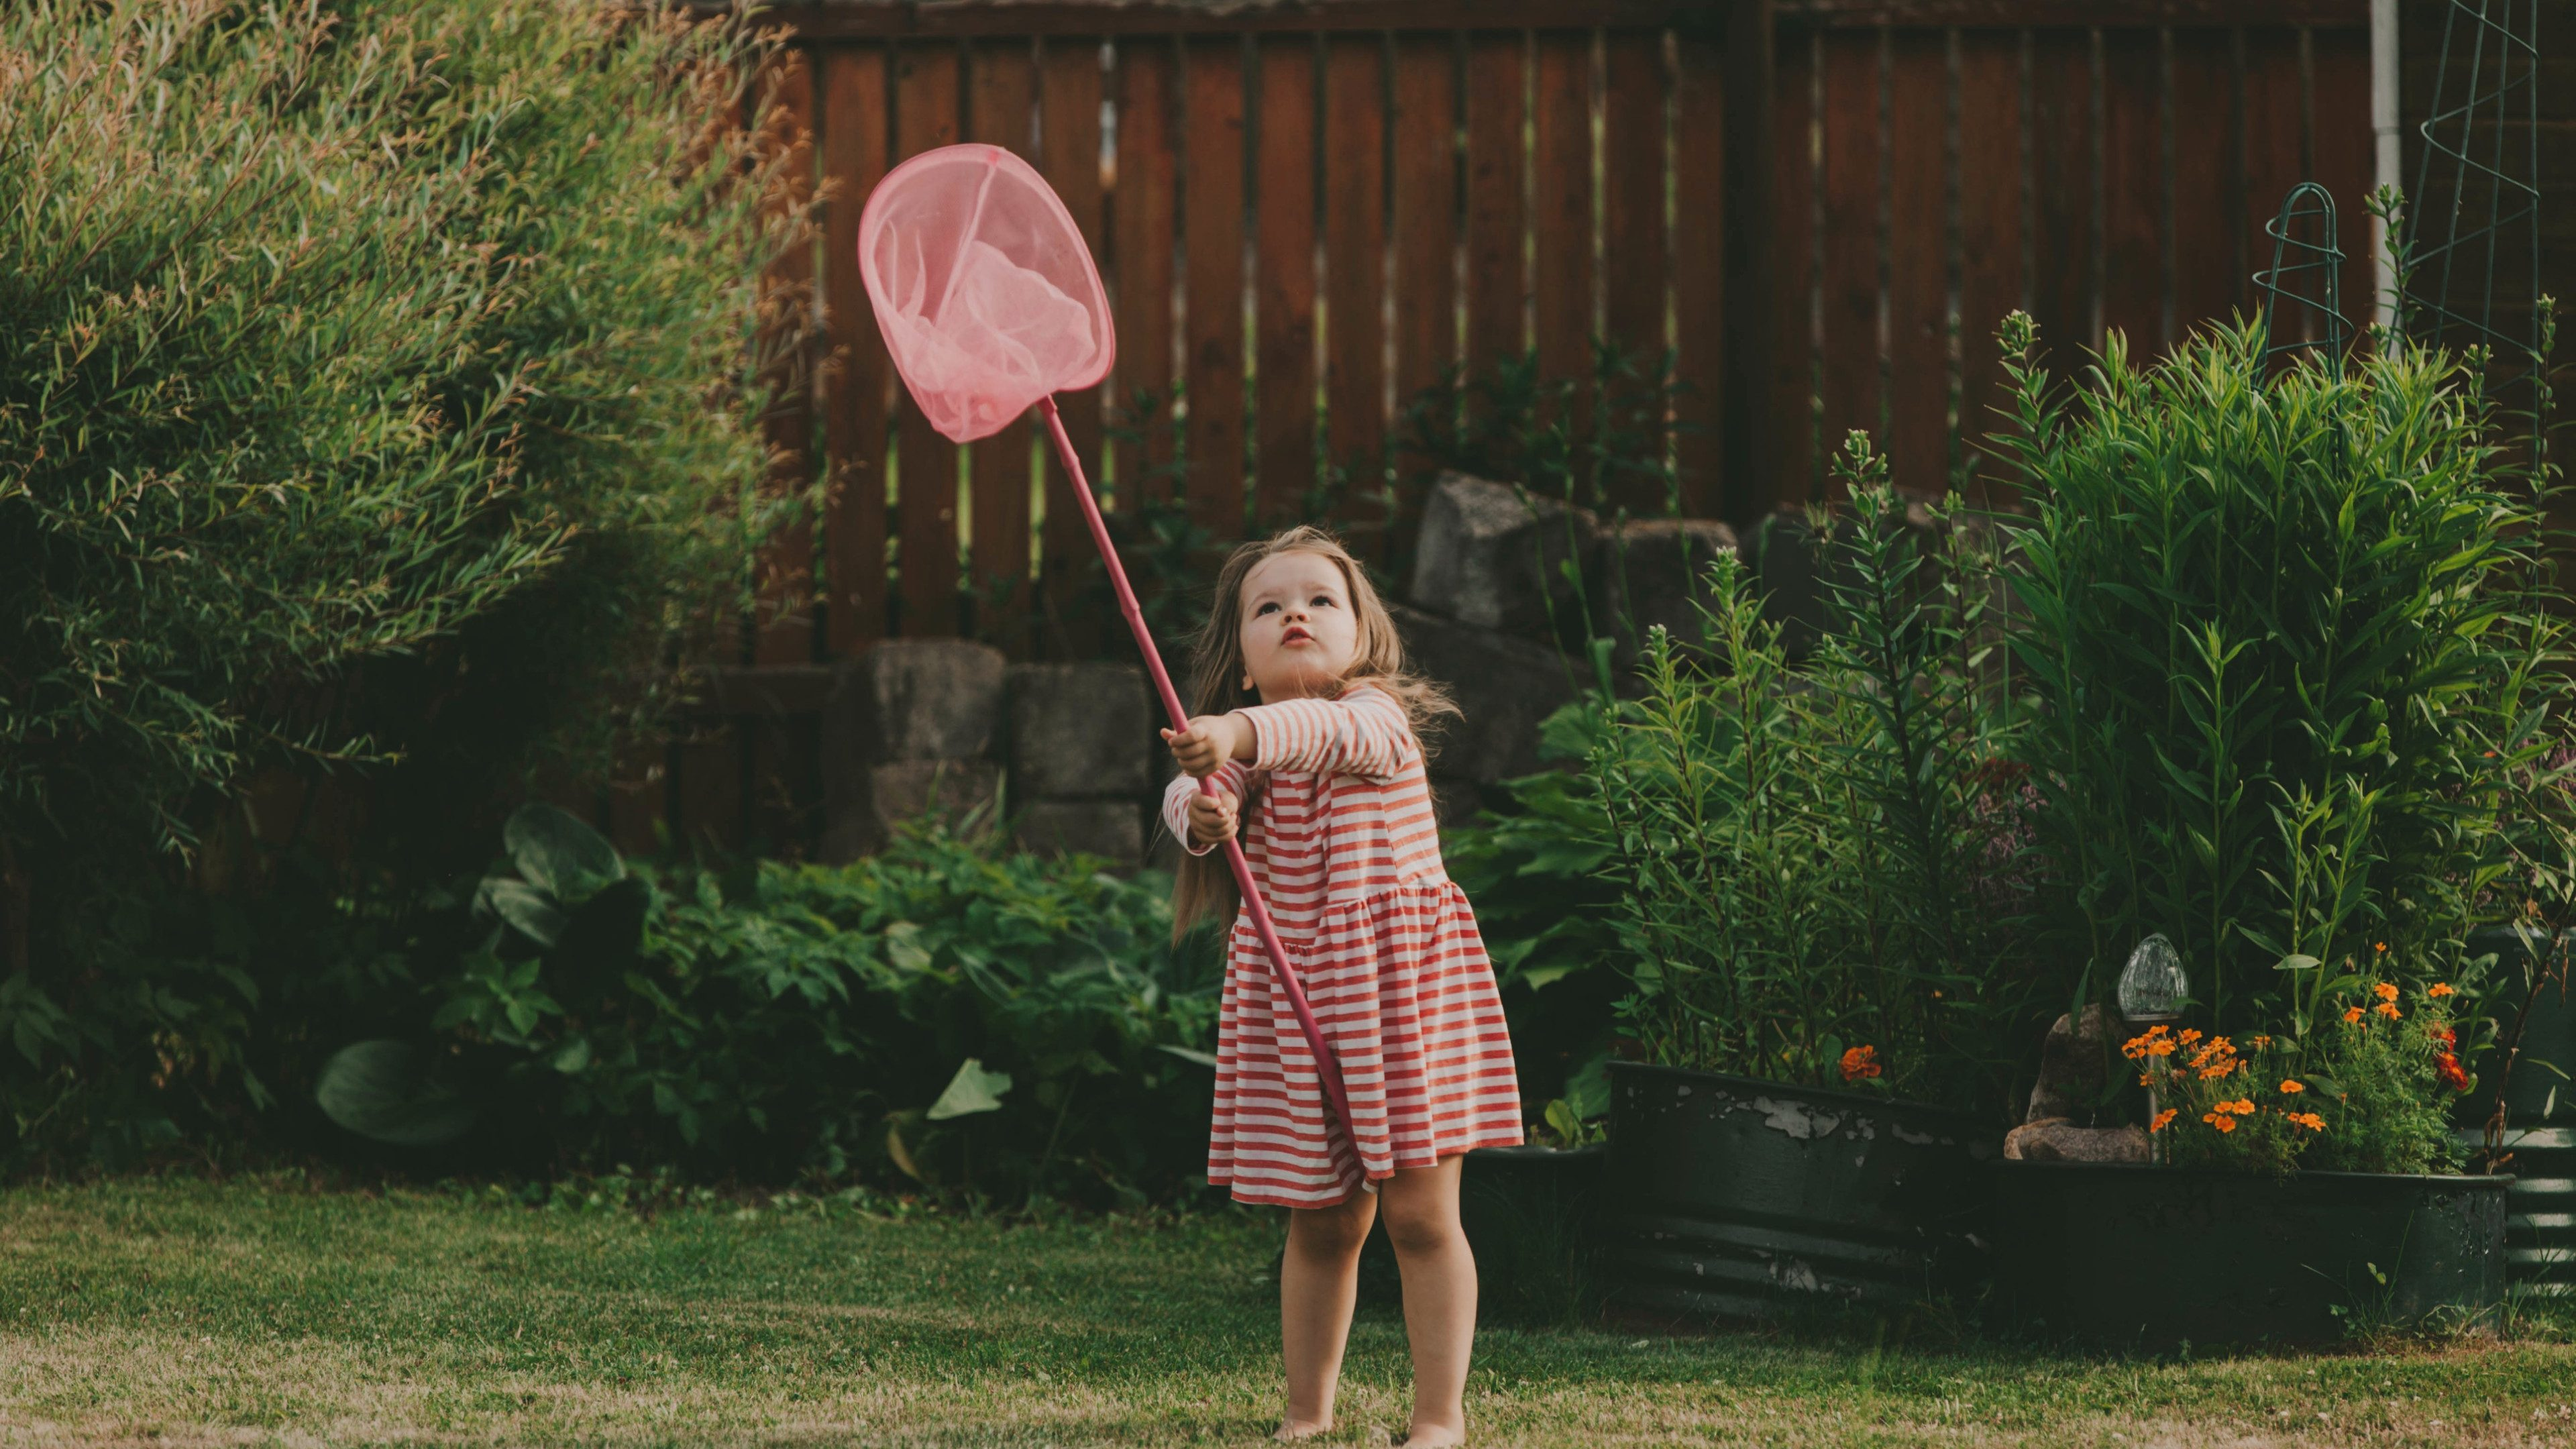 Cute baby girl with long hair in a striped dress with a pink butterfly net. Concept of holidays, summer fan, girls fashion.